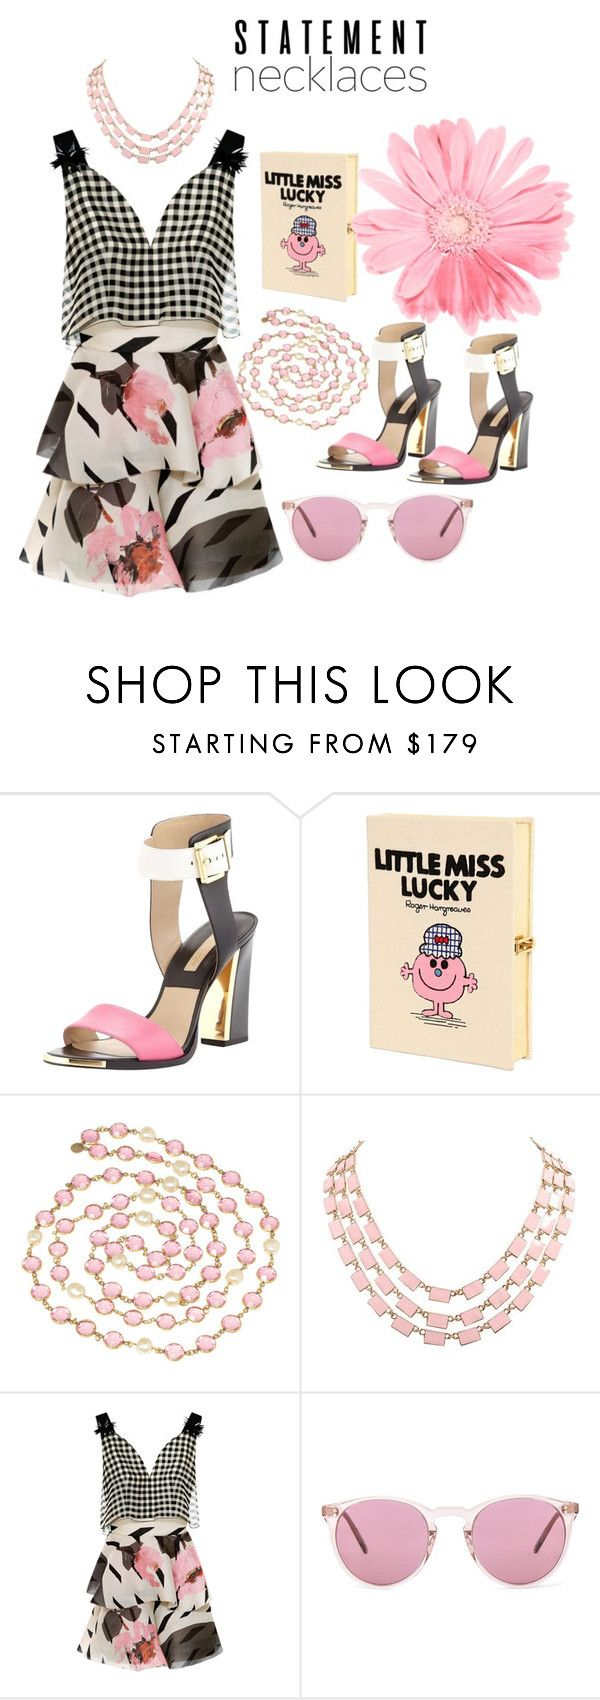 """""""Untitled #877"""" by sunnydays4everkh ❤ liked on Polyvore featuring Michael Kors, Olympia Le-Tan, Chanel, Delpozo, Oliver Peoples and statementnecklaces"""